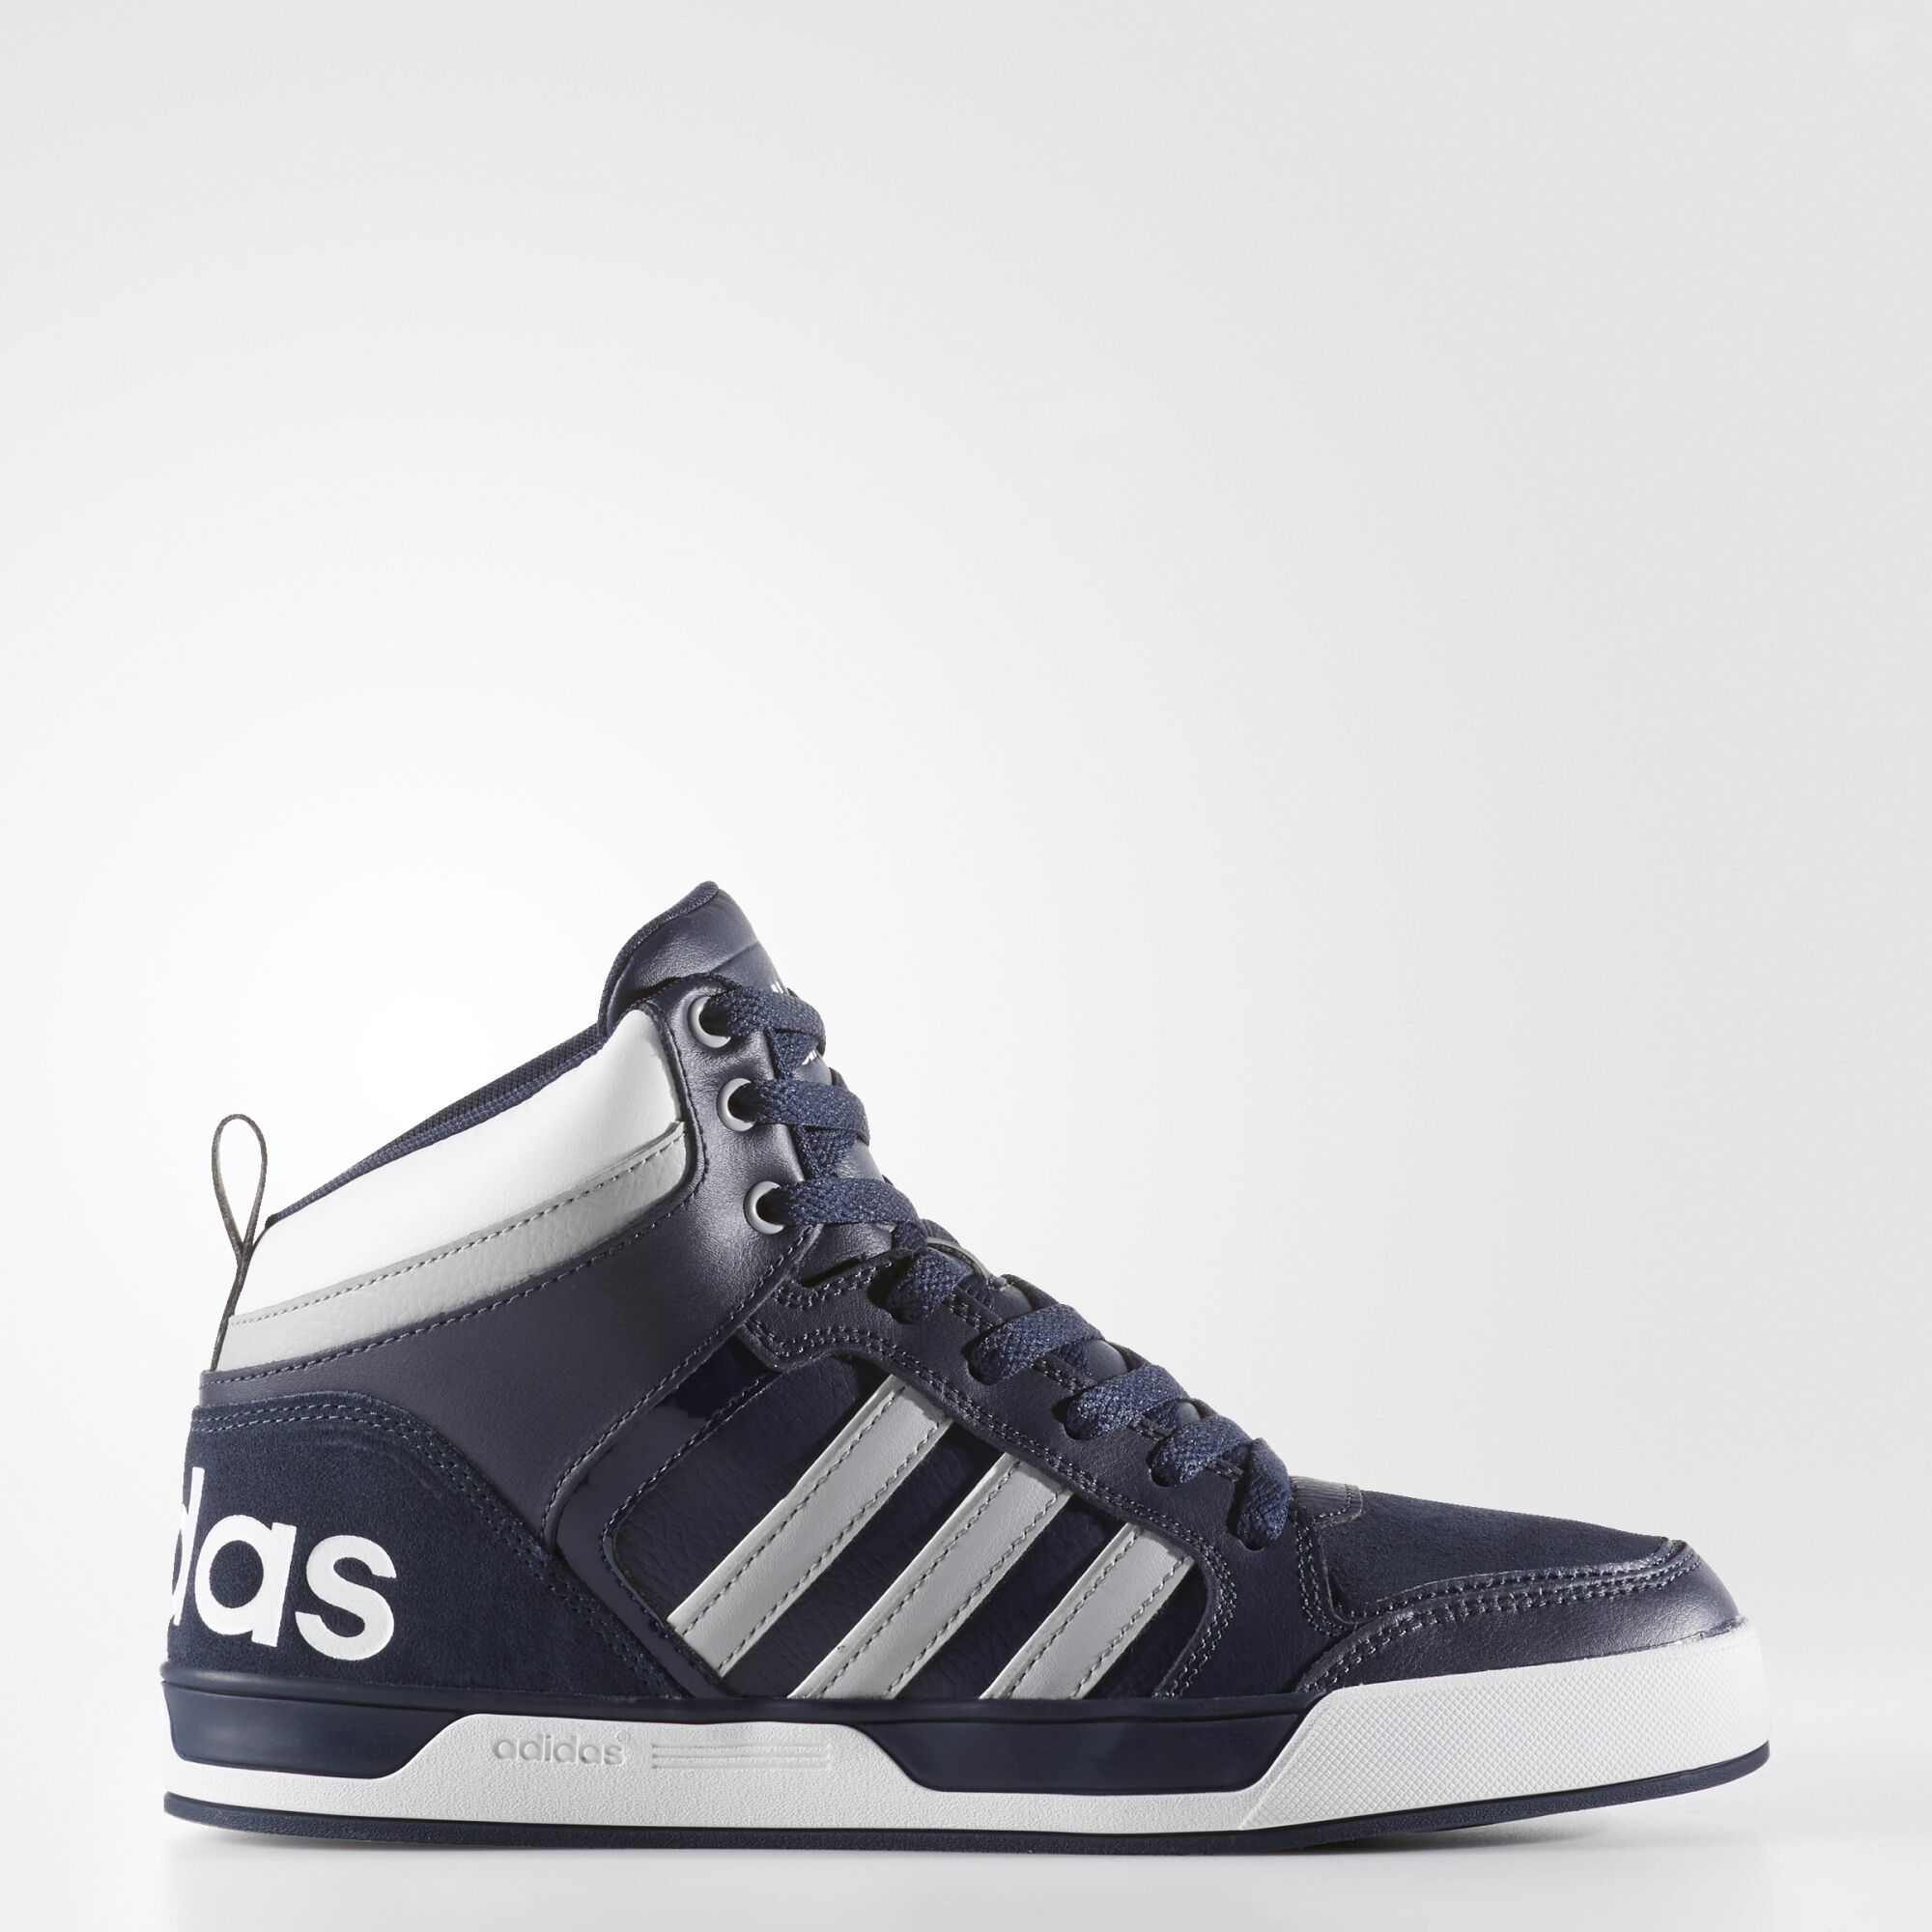 Neo Adidas High Tops